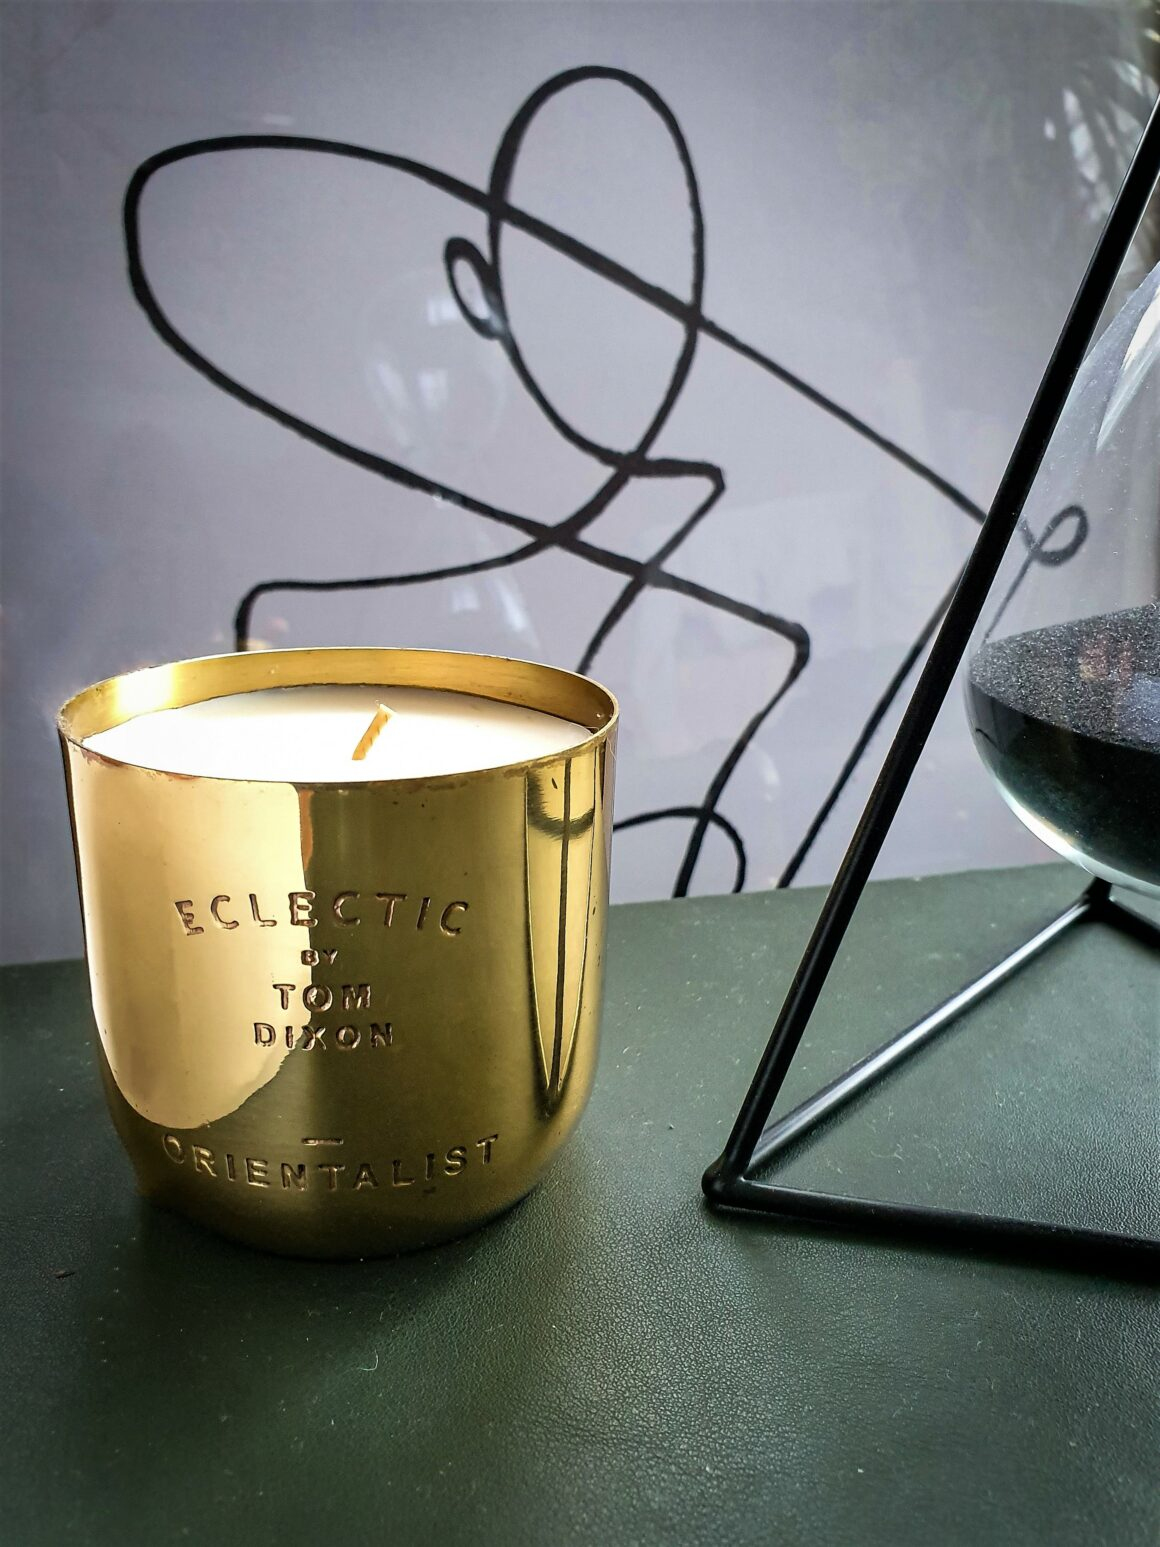 Precisely picked Christmas presents for him - Tom Dixon Candle